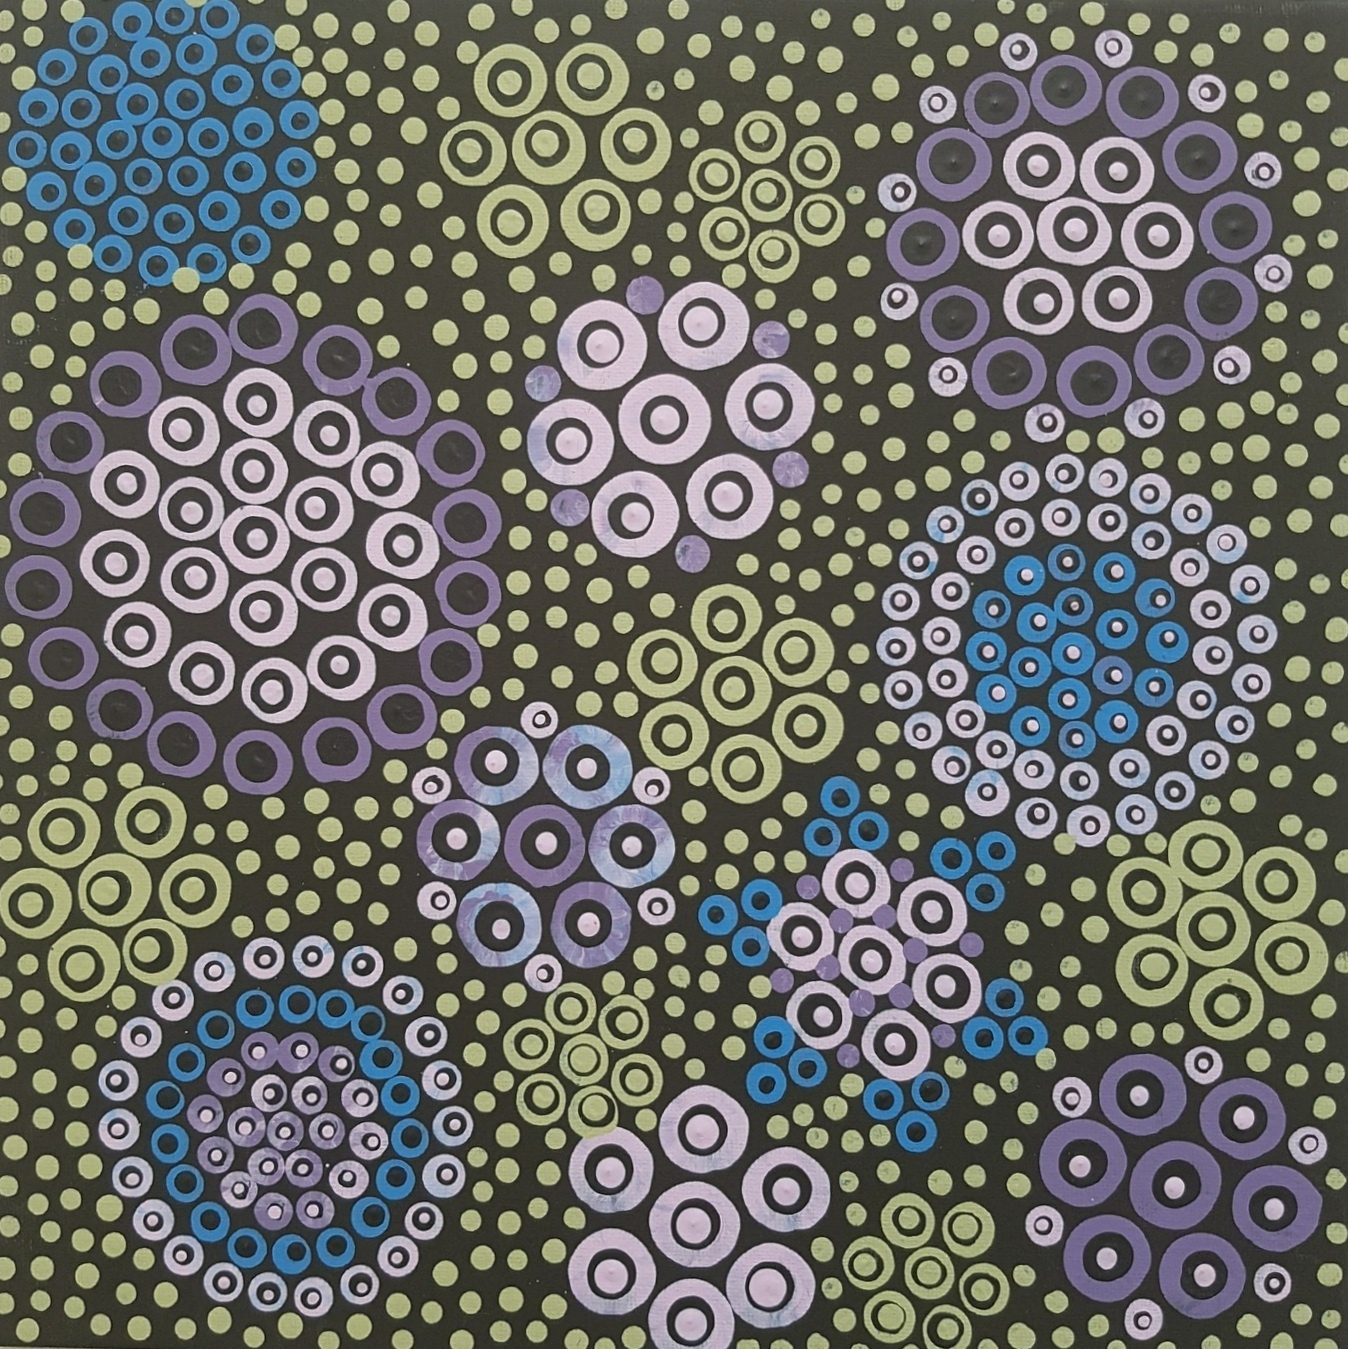 3D dot painting: Daisies